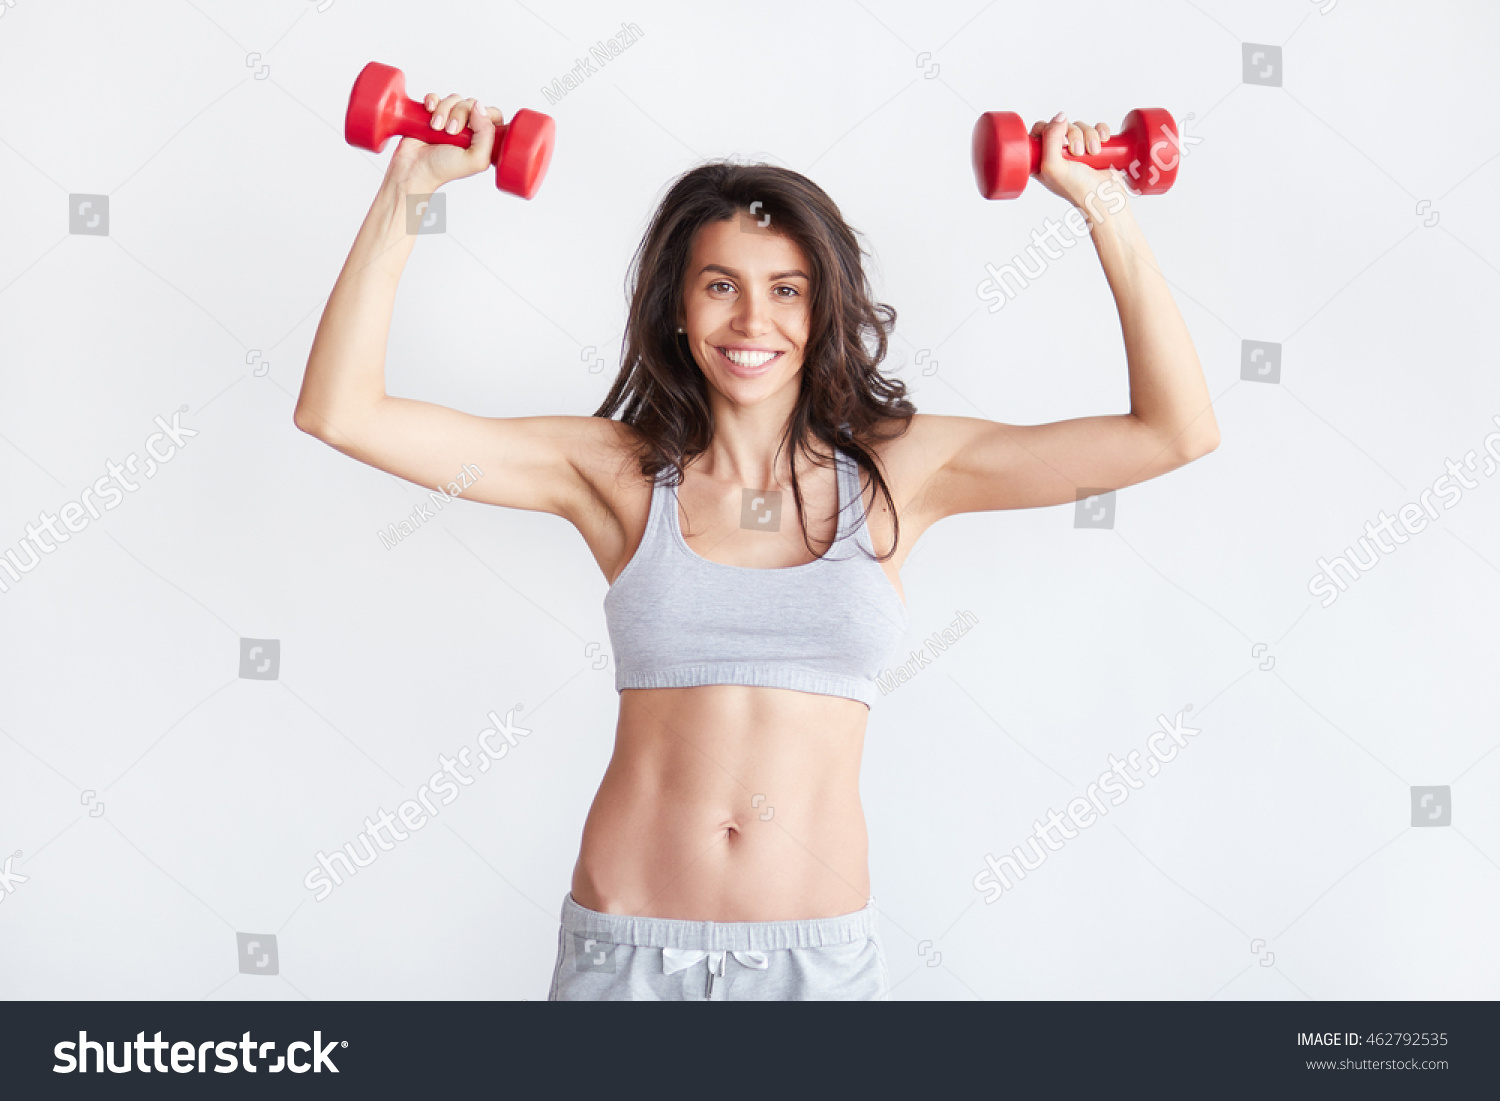 Smiling athletic woman pumping up muscles with red dumbbells isolated on white background. Strong fit brunette female fitness trainer #462792535